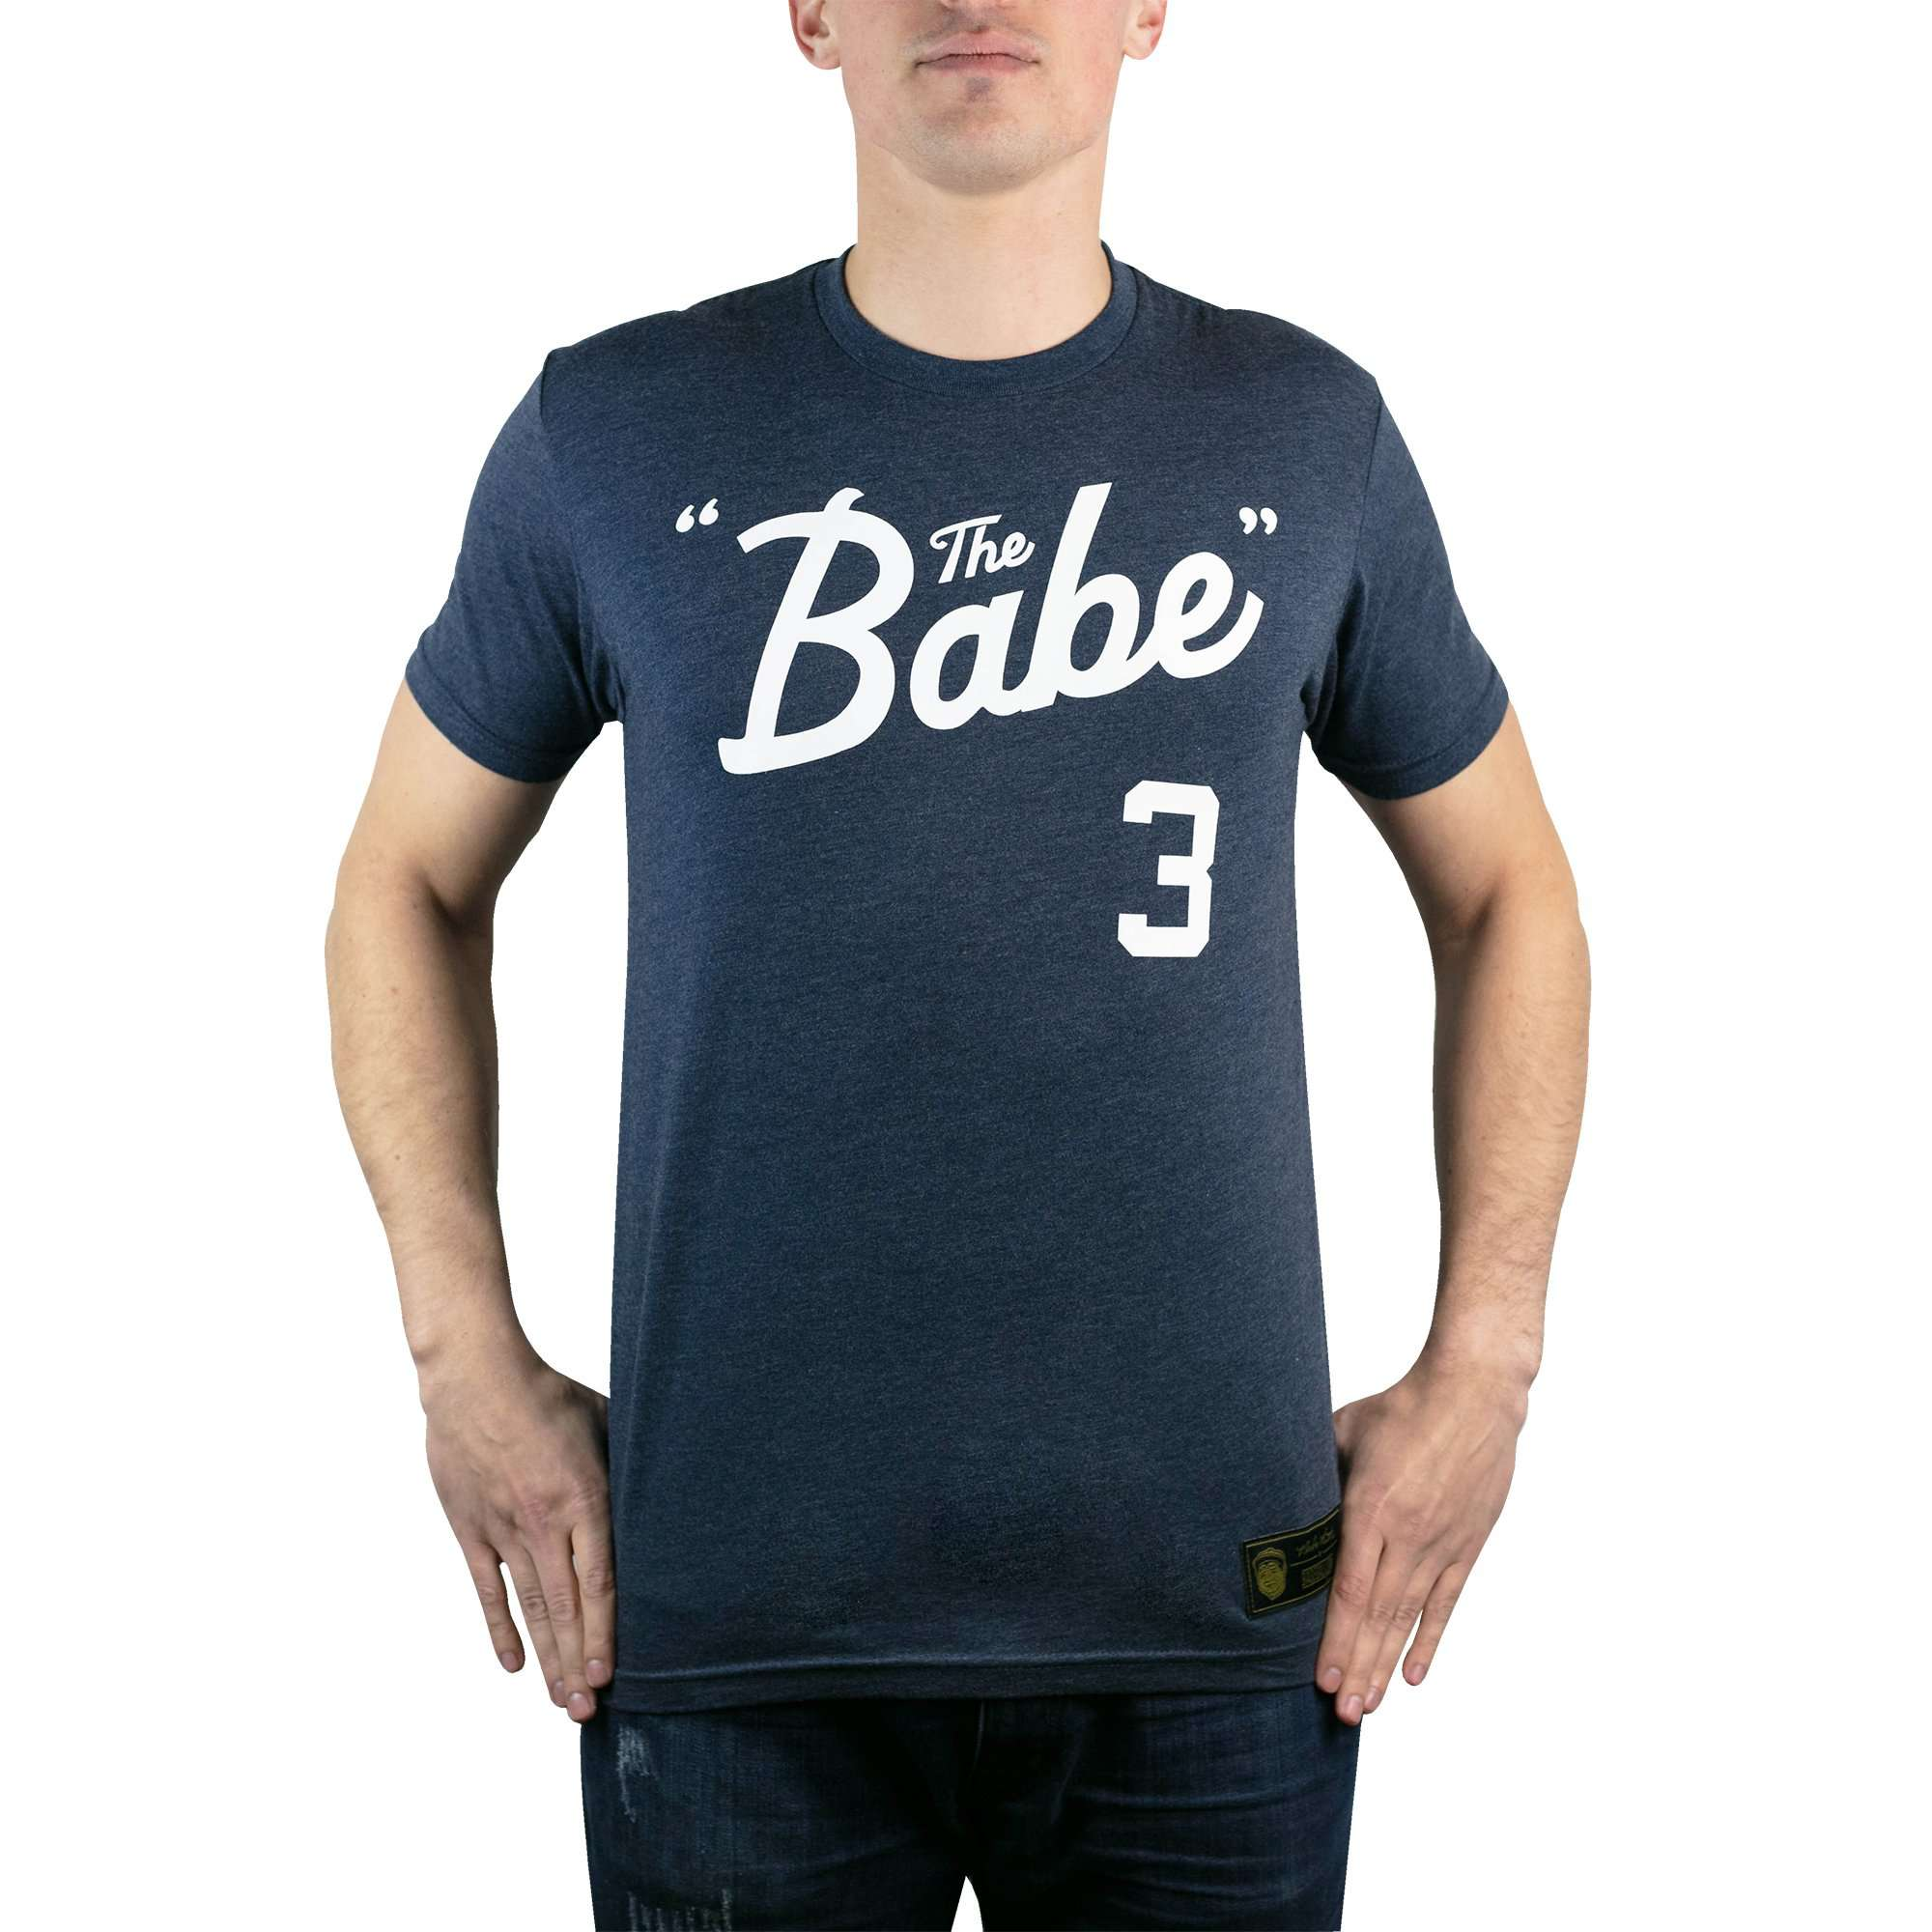 info for a316f 2169f Babe's Jersey - Babe Ruth Collection